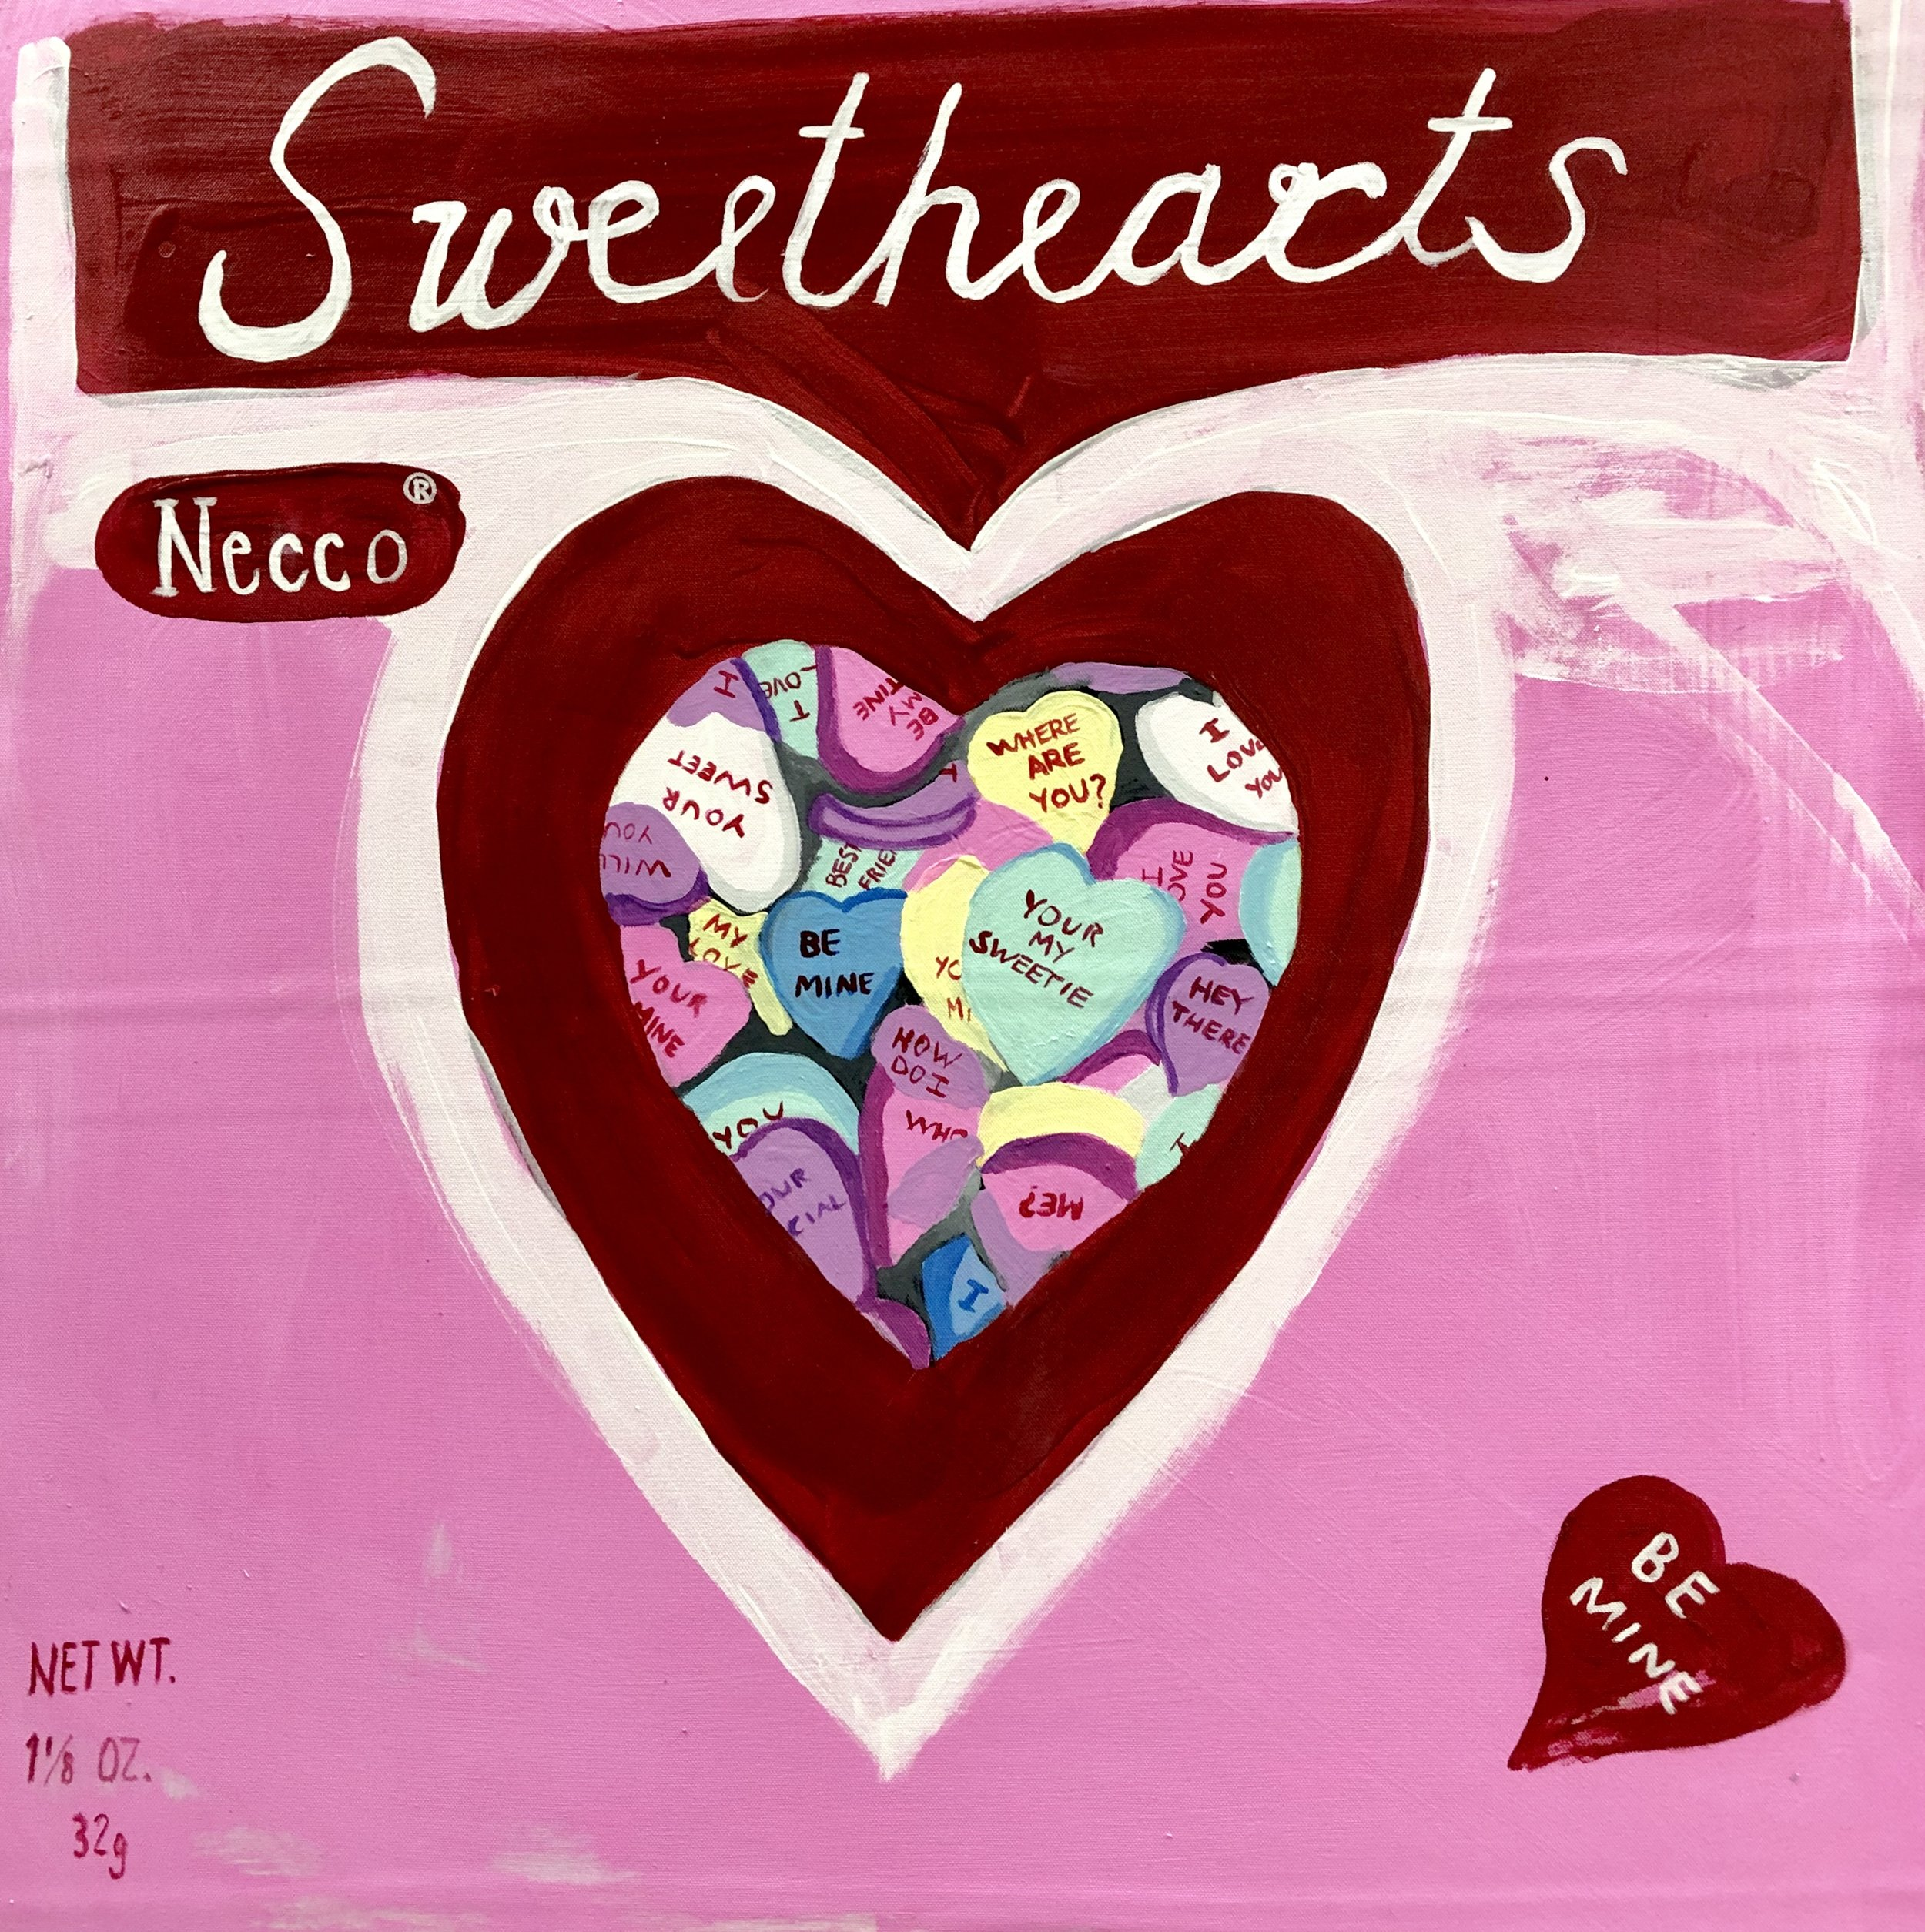 "CAMBRIDGE CANDY SERIES-SWEETHEARTS by NECCO-ACRYLIC ON CANVAS-20"" X 16""-2019"